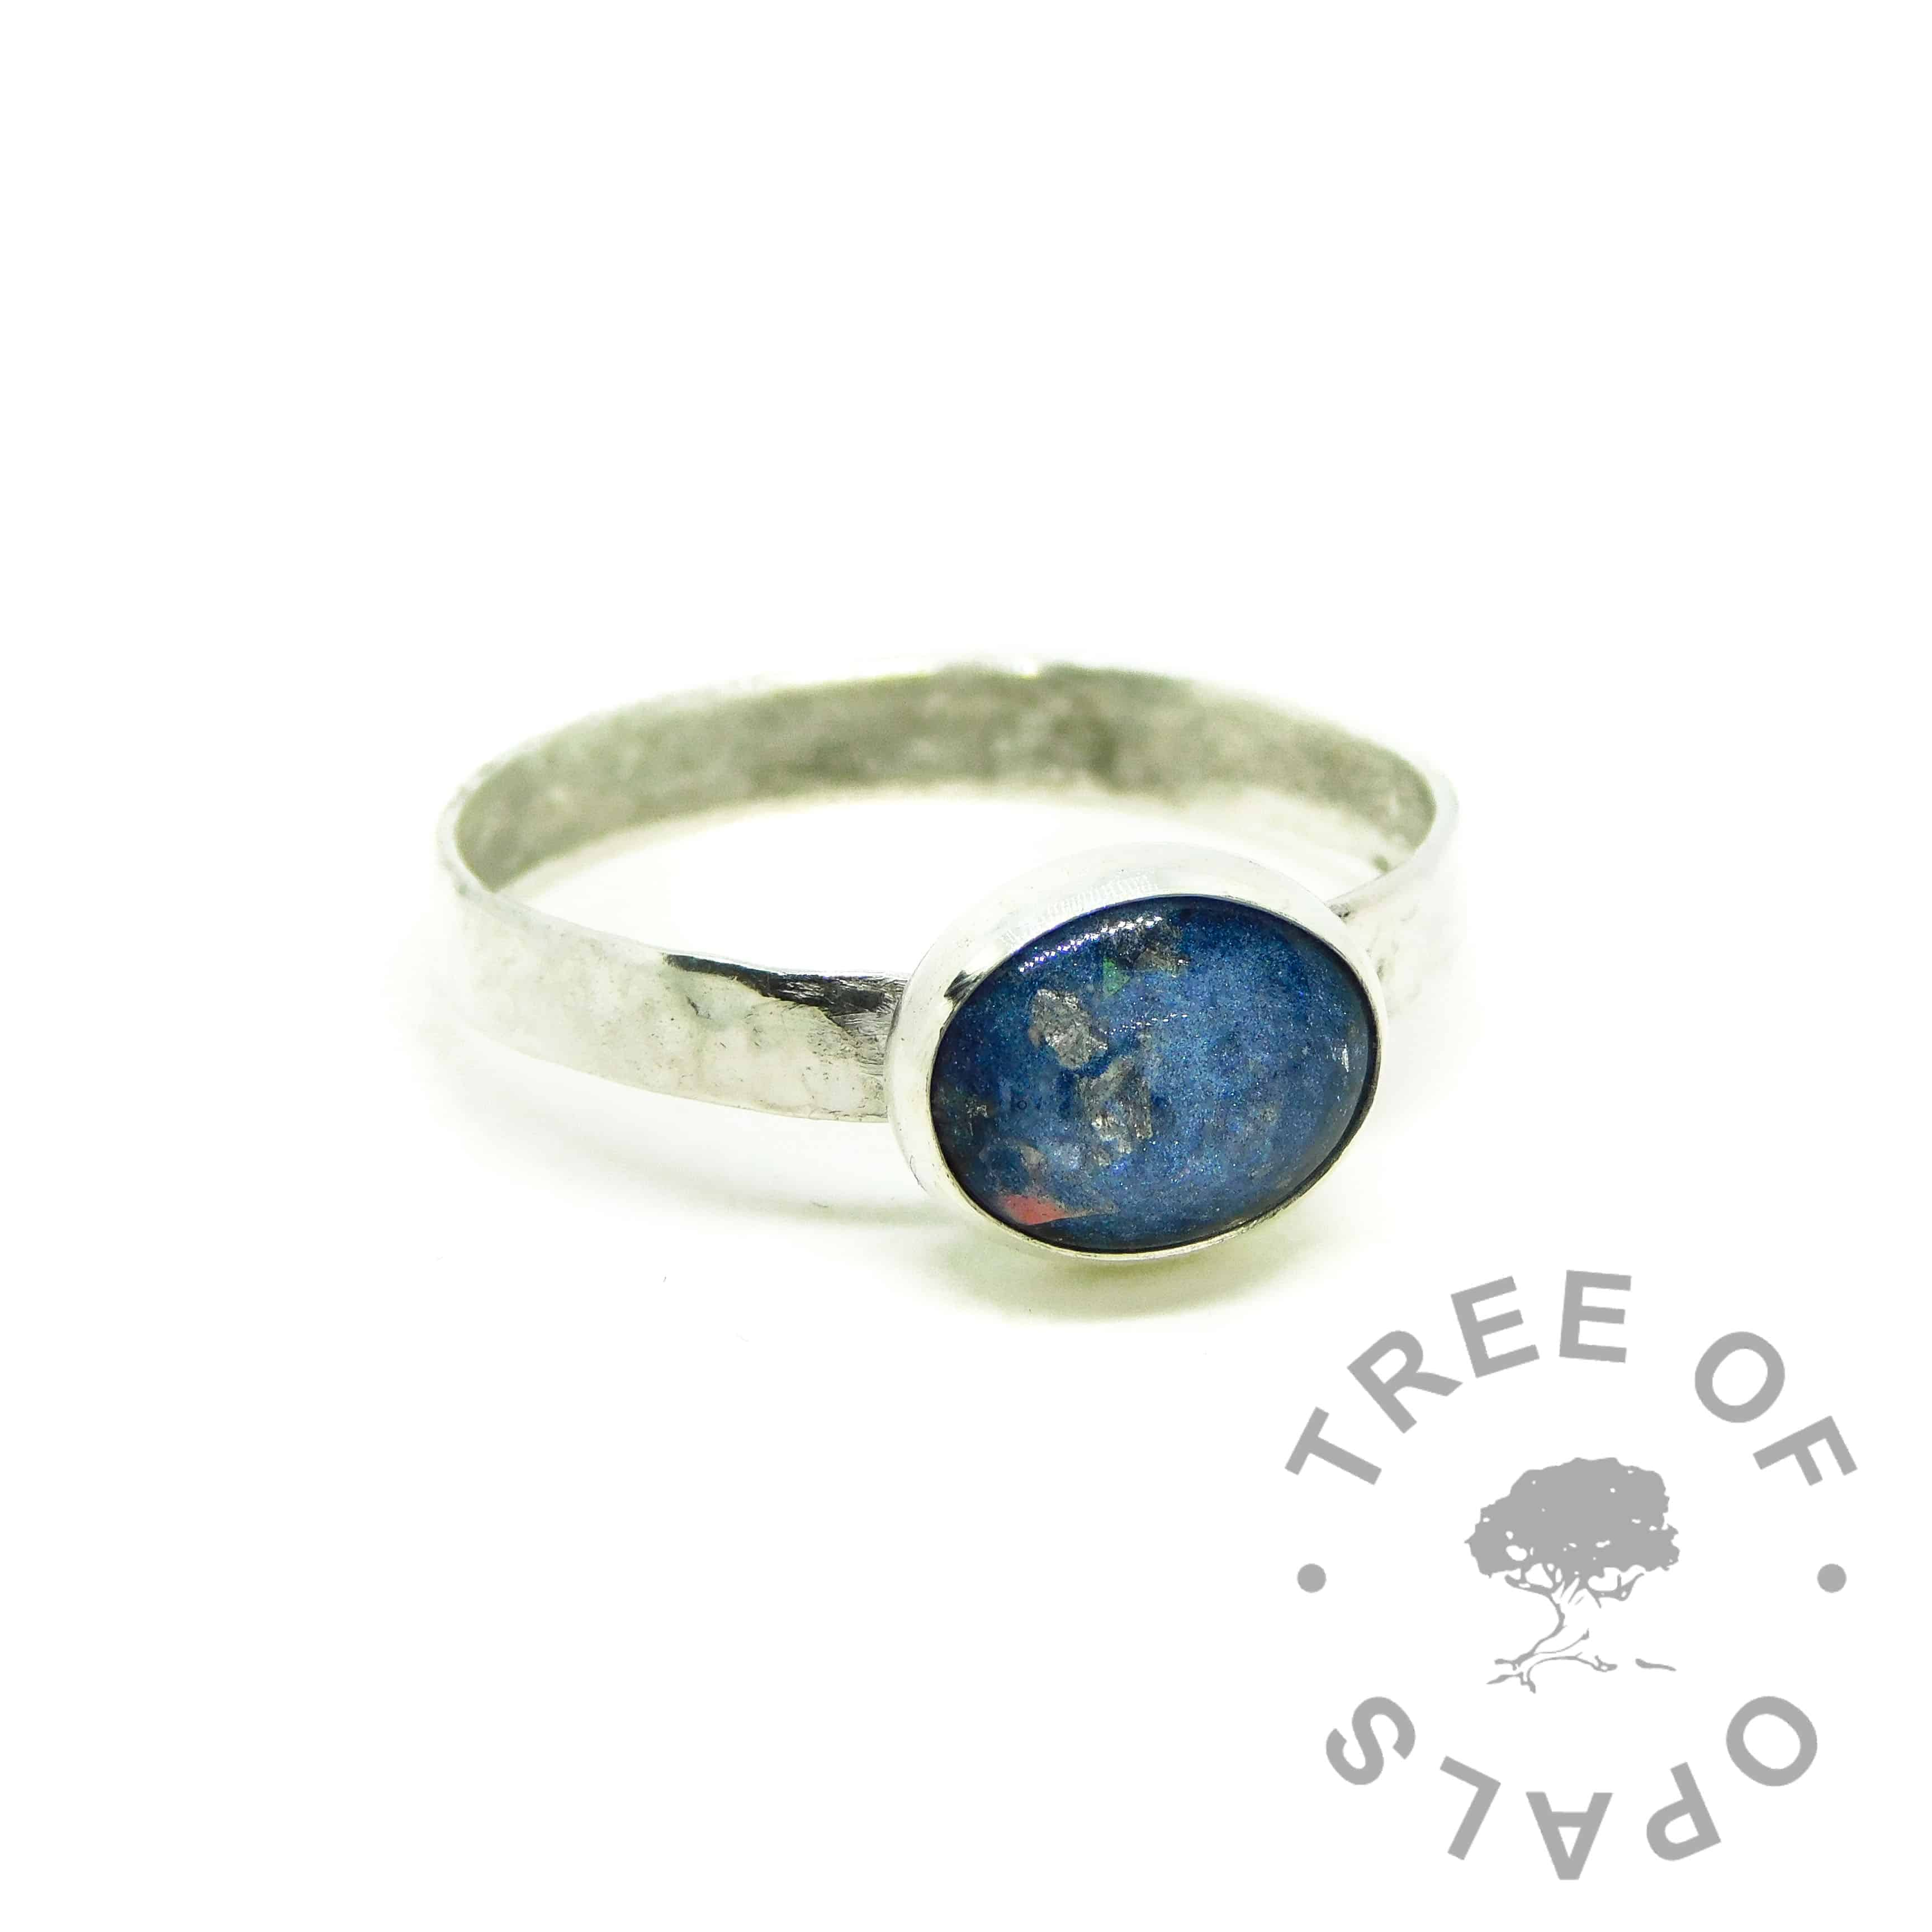 Aegean blue cremation ashes ring with textured band, Argentium sterling silver 935